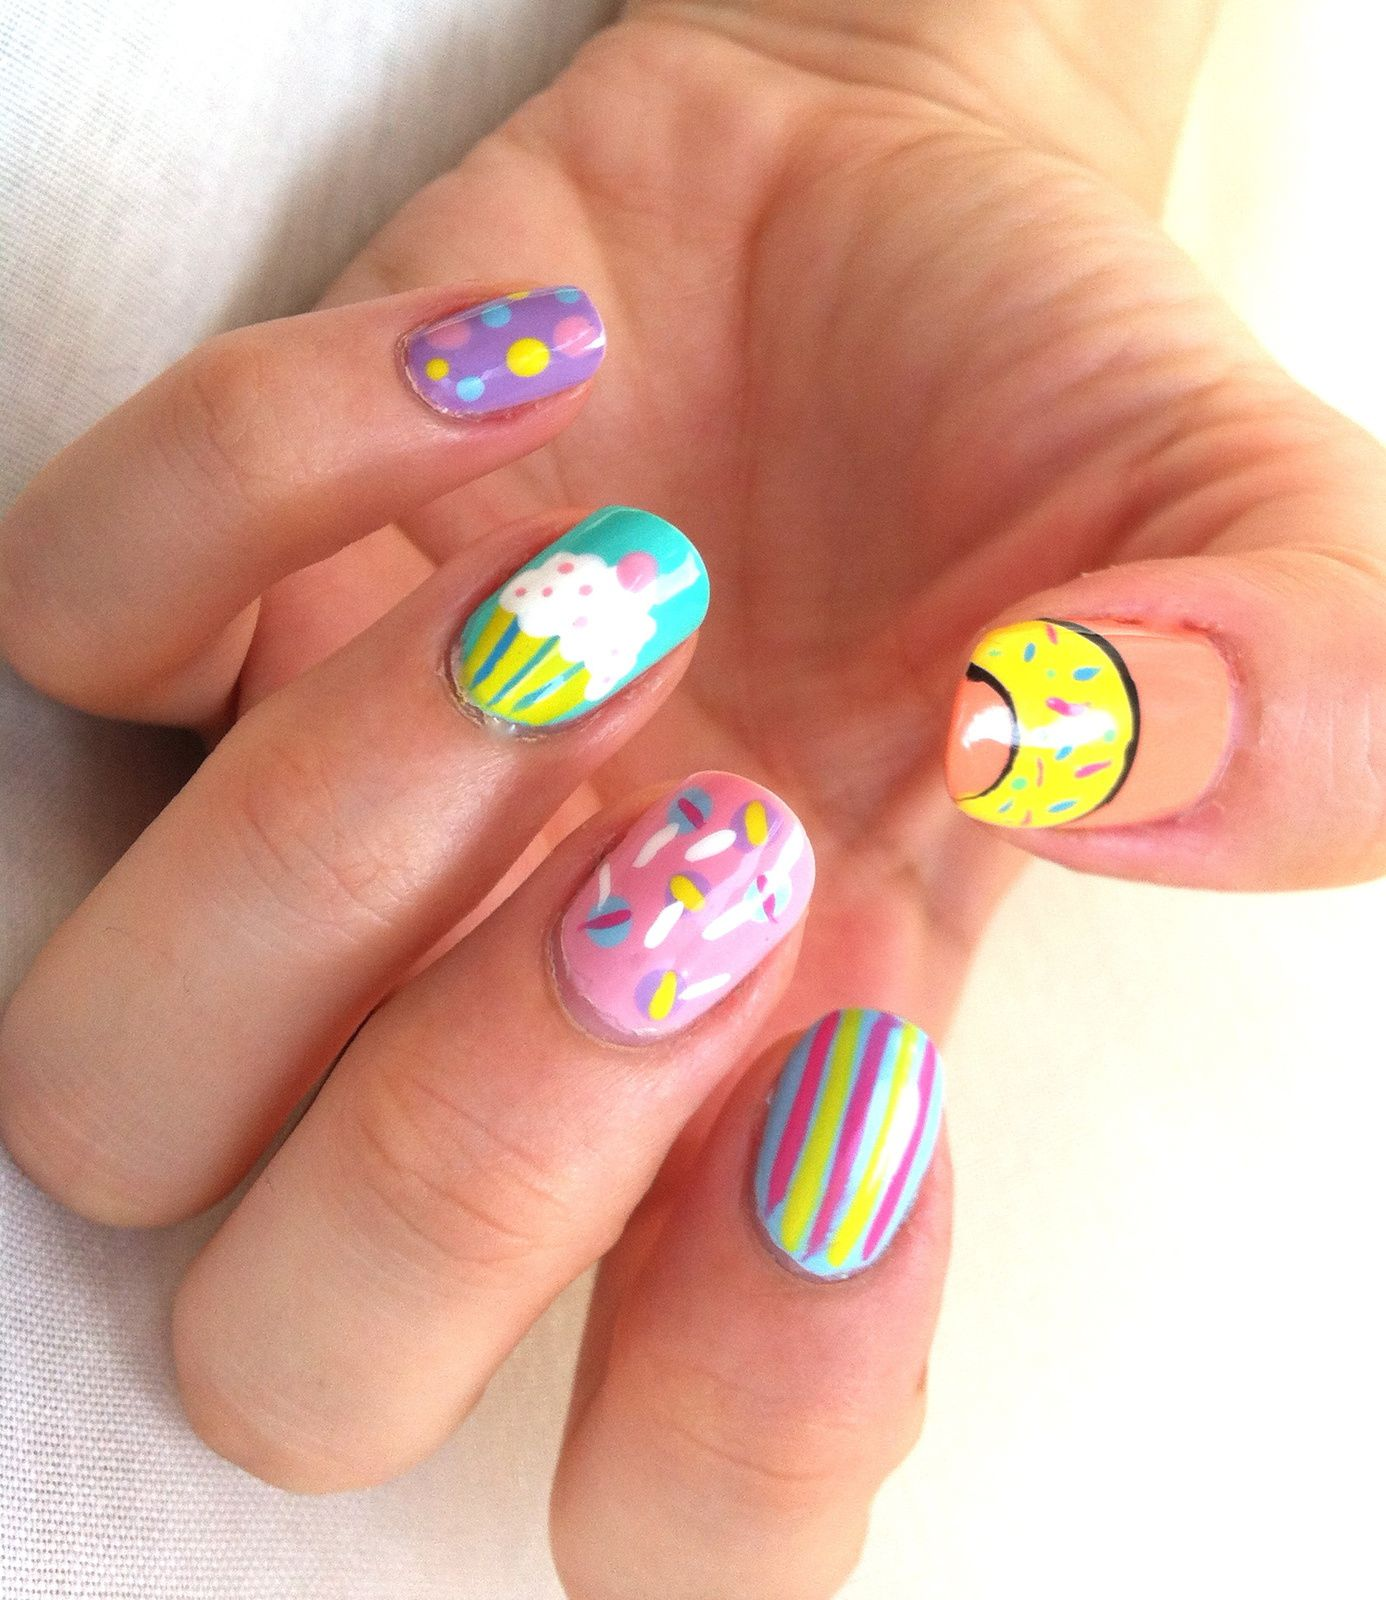 nailstorming cupcake et compagnie